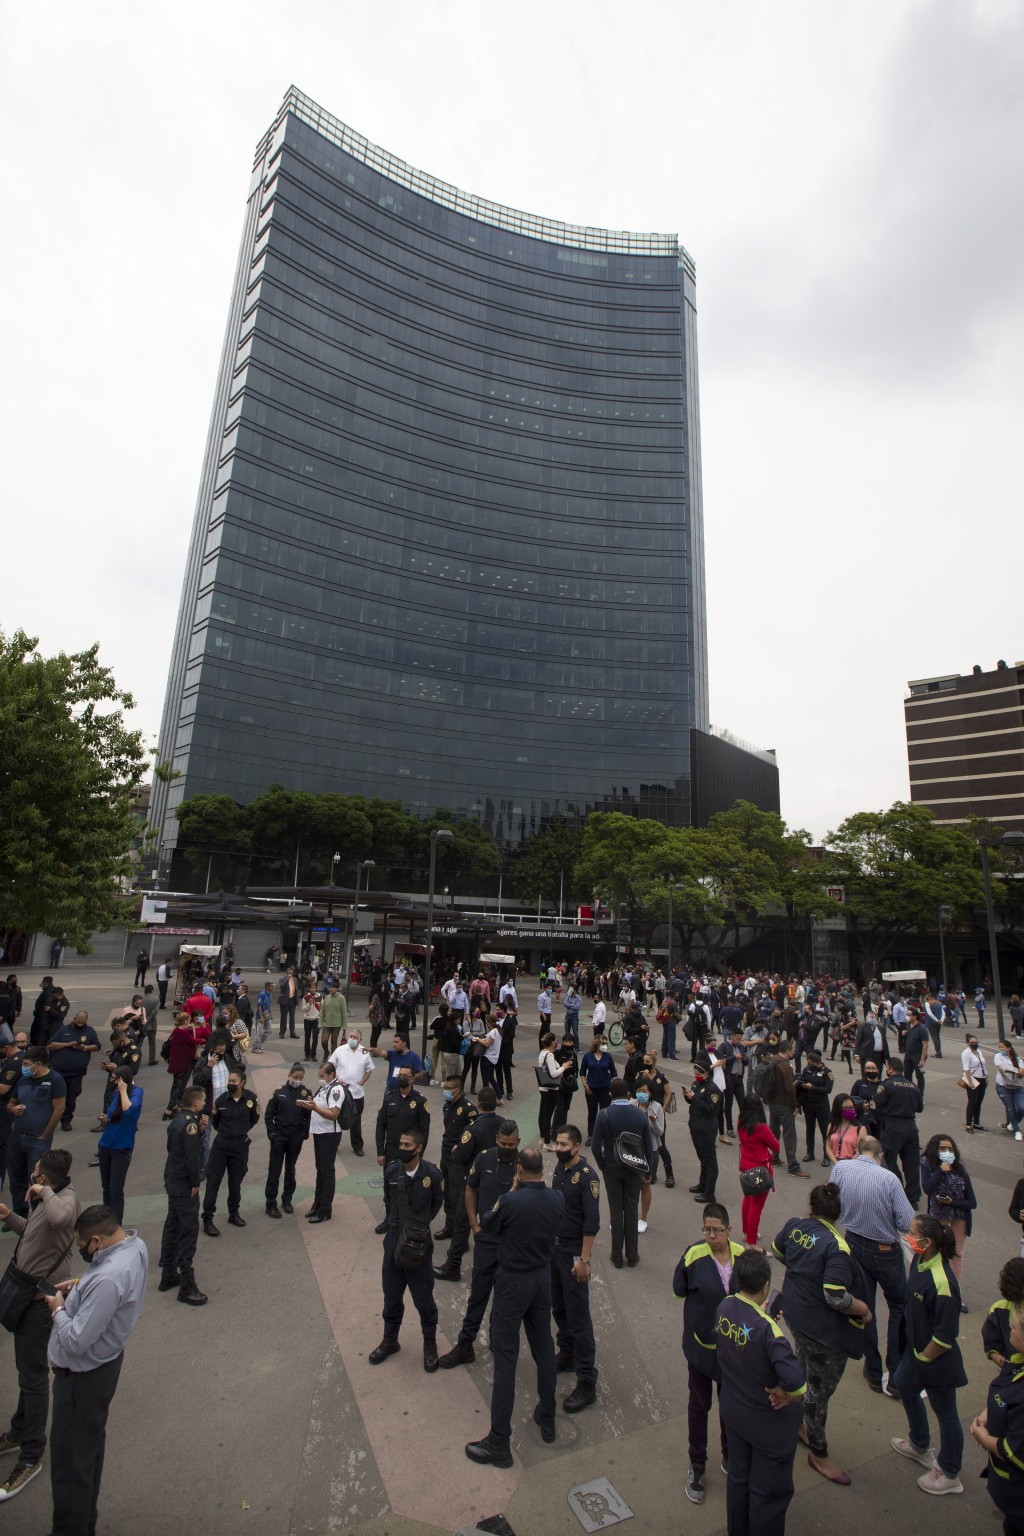 Residents stand in the pedestrian walkway of the Insurgentes roundabout after an earthquake in Mexico City on Tuesday, June 23, 2020. The earthquake s...